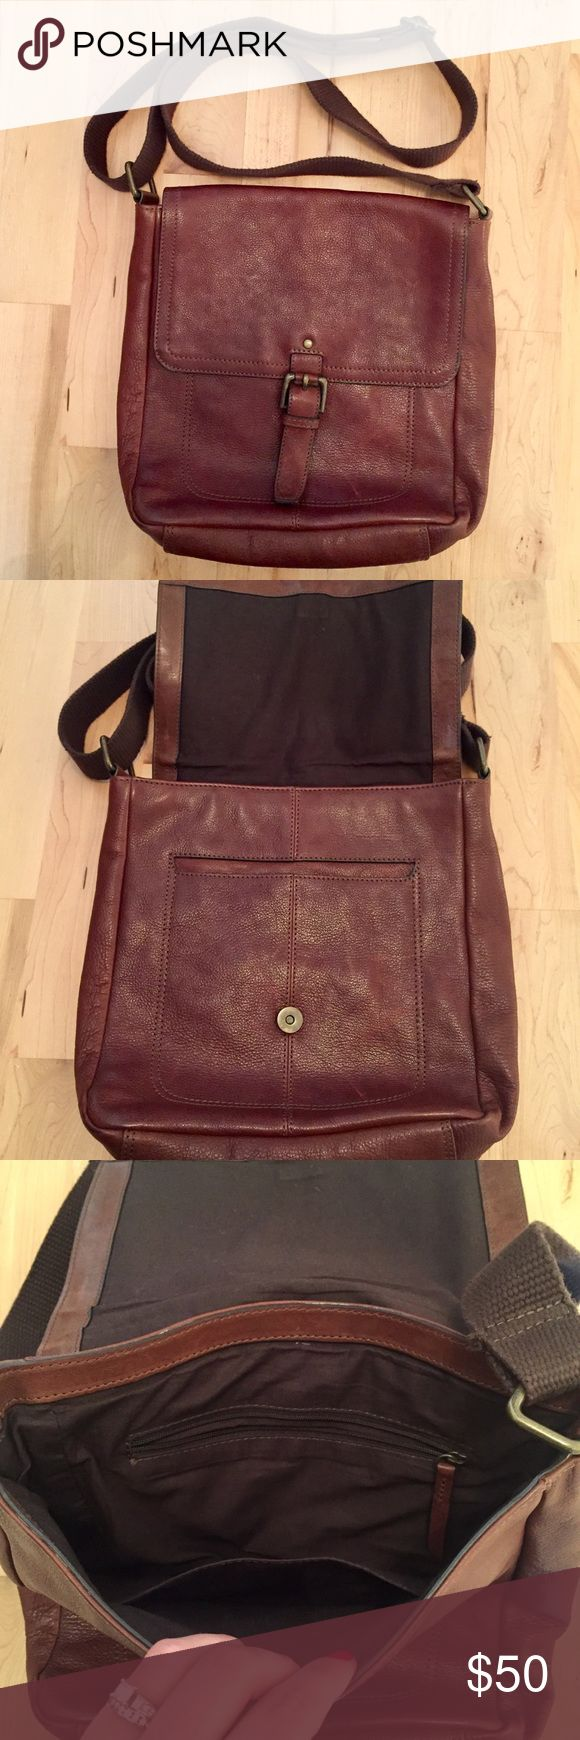 Marks & Spencer leather crossbody purse Marks & Spencer leather crossbody purse! 2 exterior pockets. 2 interior pockets. Adjustable strap. In great condition! Marks & Spencer Bags Crossbody Bags